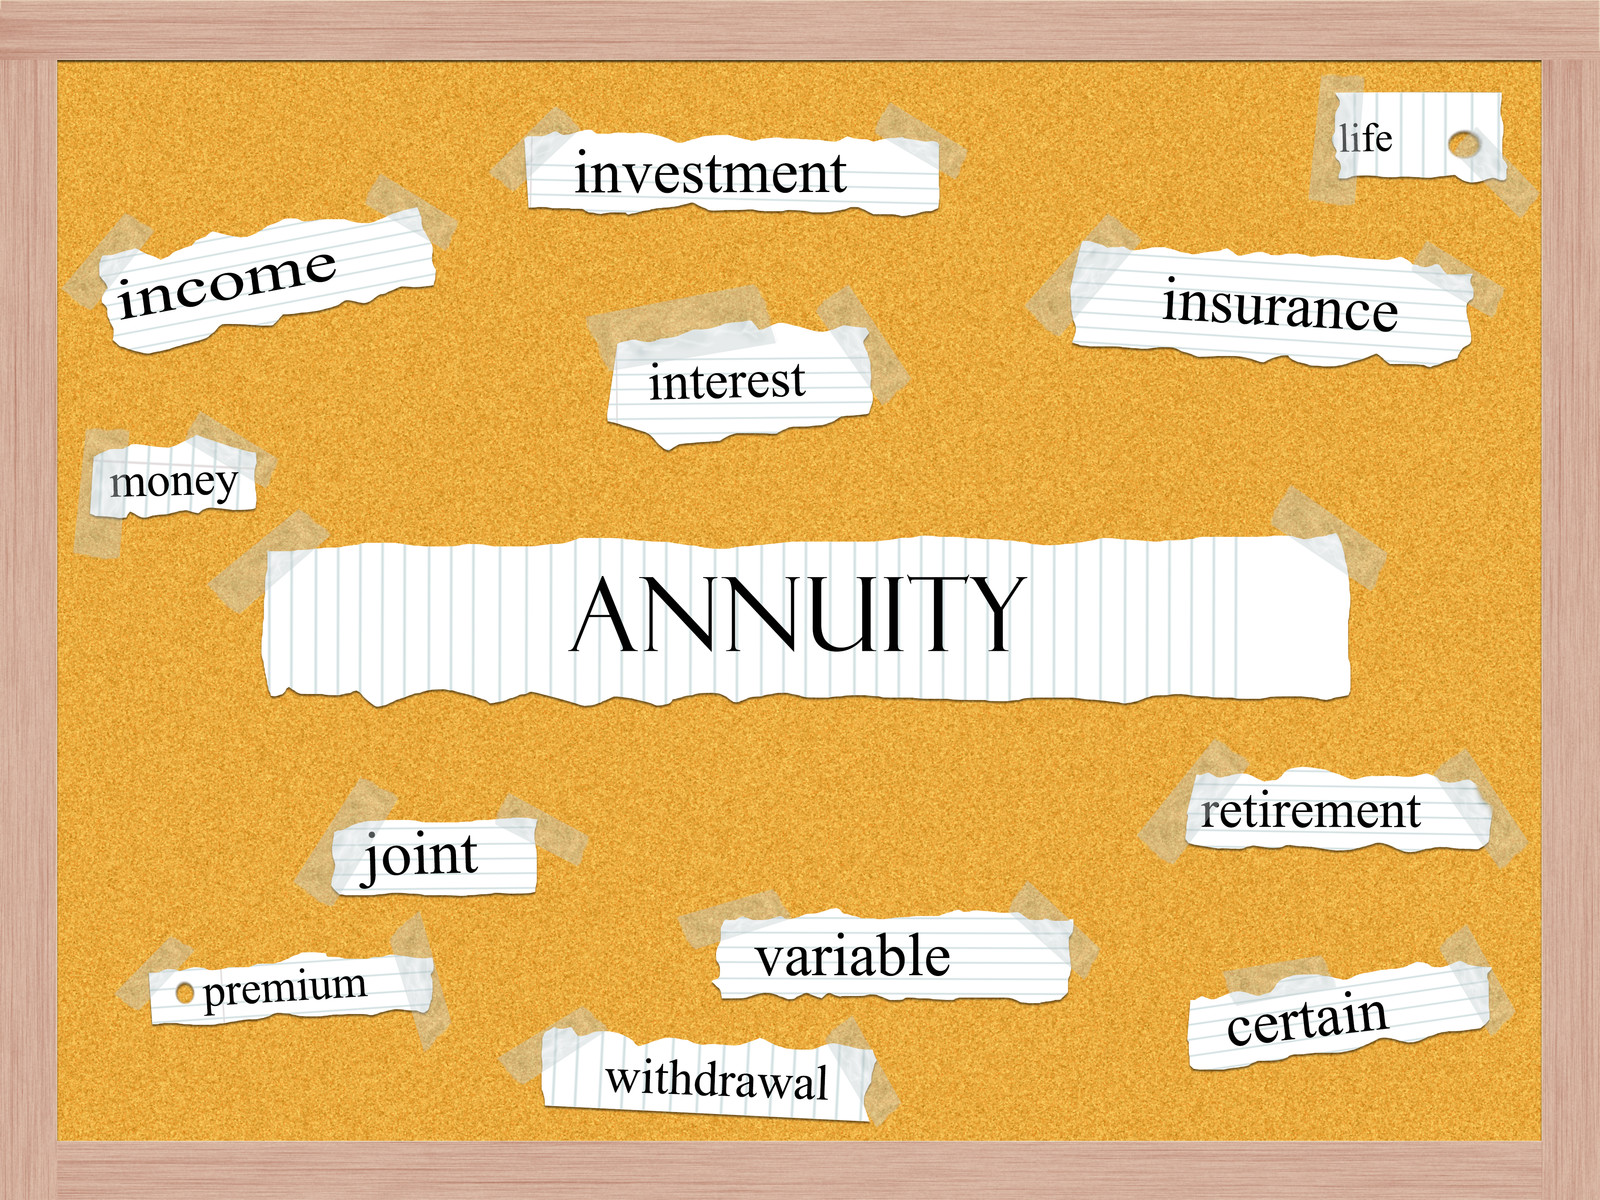 Secondary Annuities - Higher Return Without More Risk